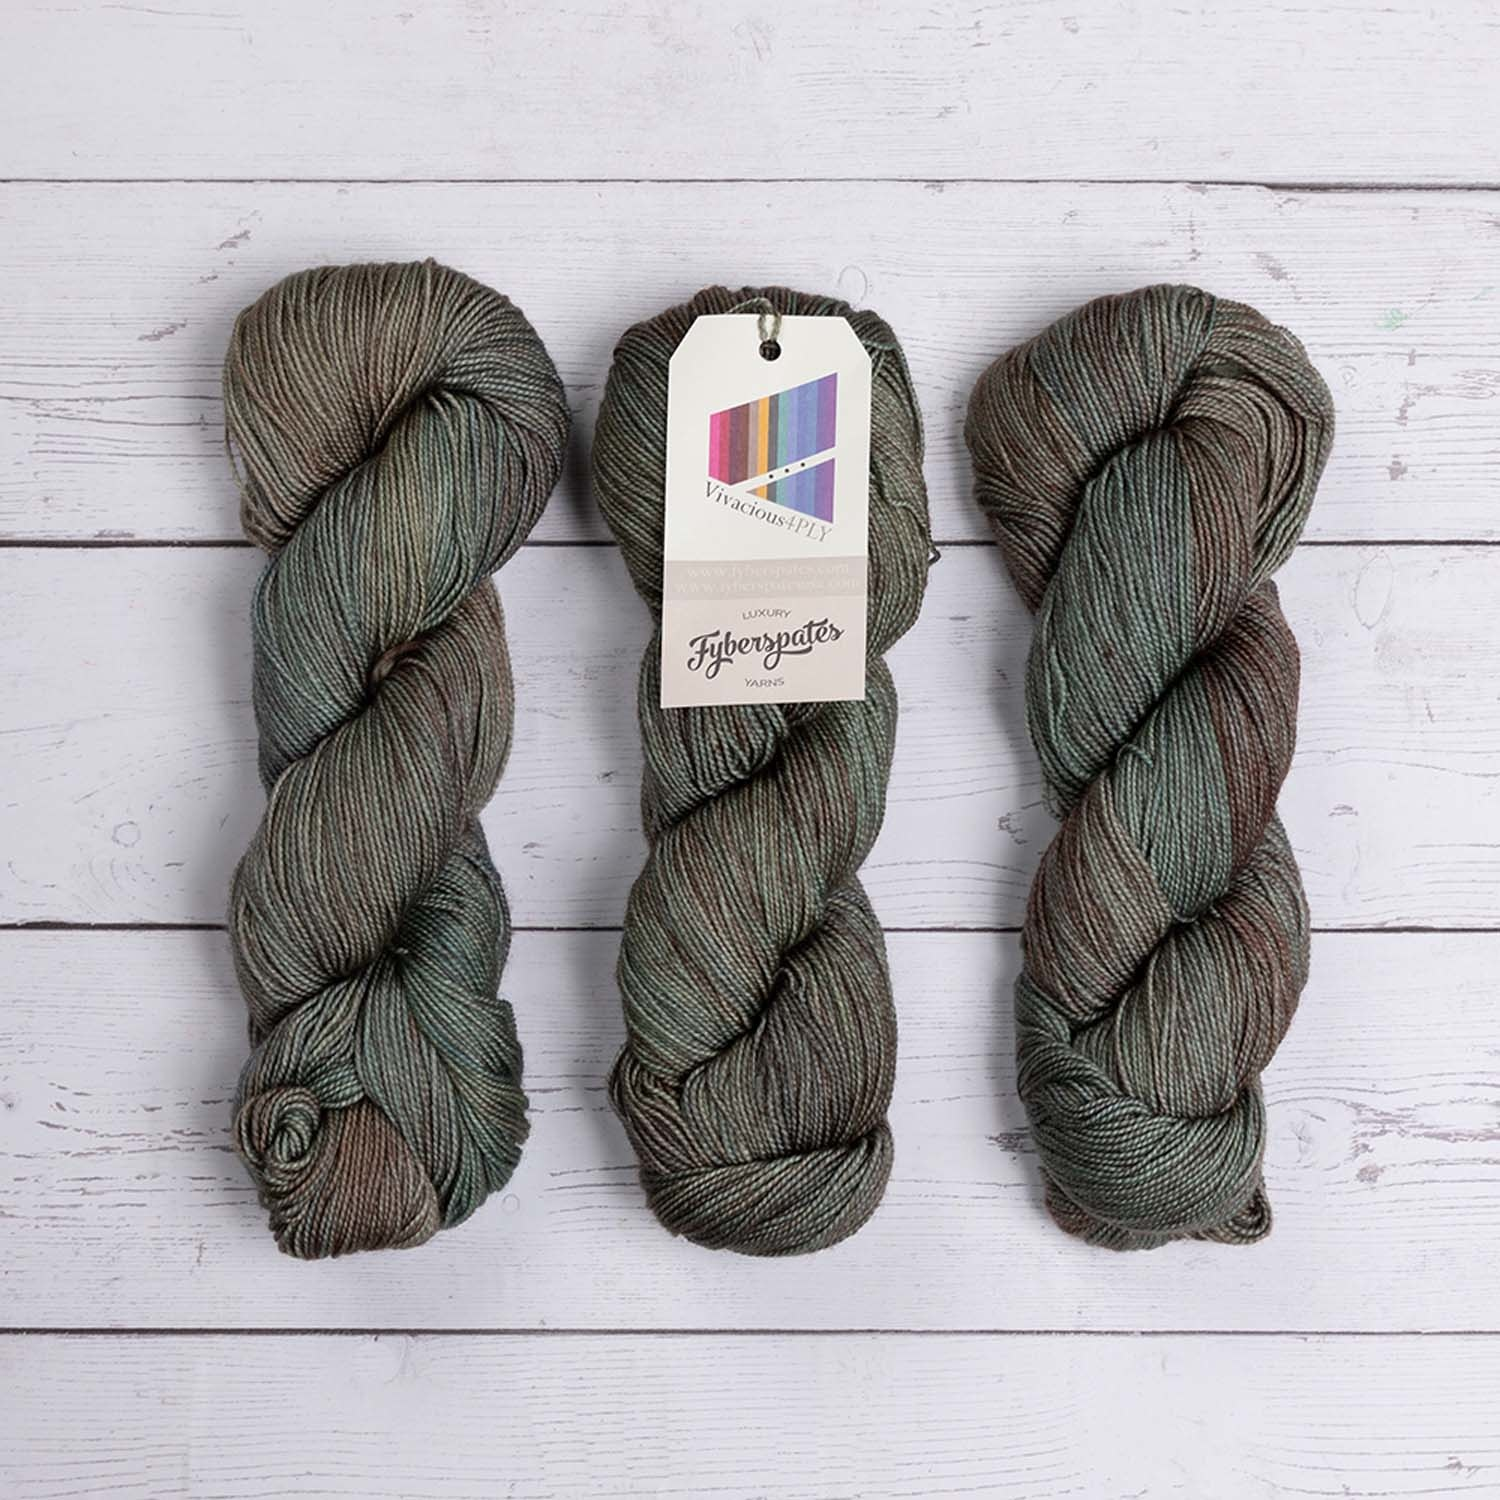 Fyberspates VIVACIOUS 4 PLY - 615 LUNDY ISLAND